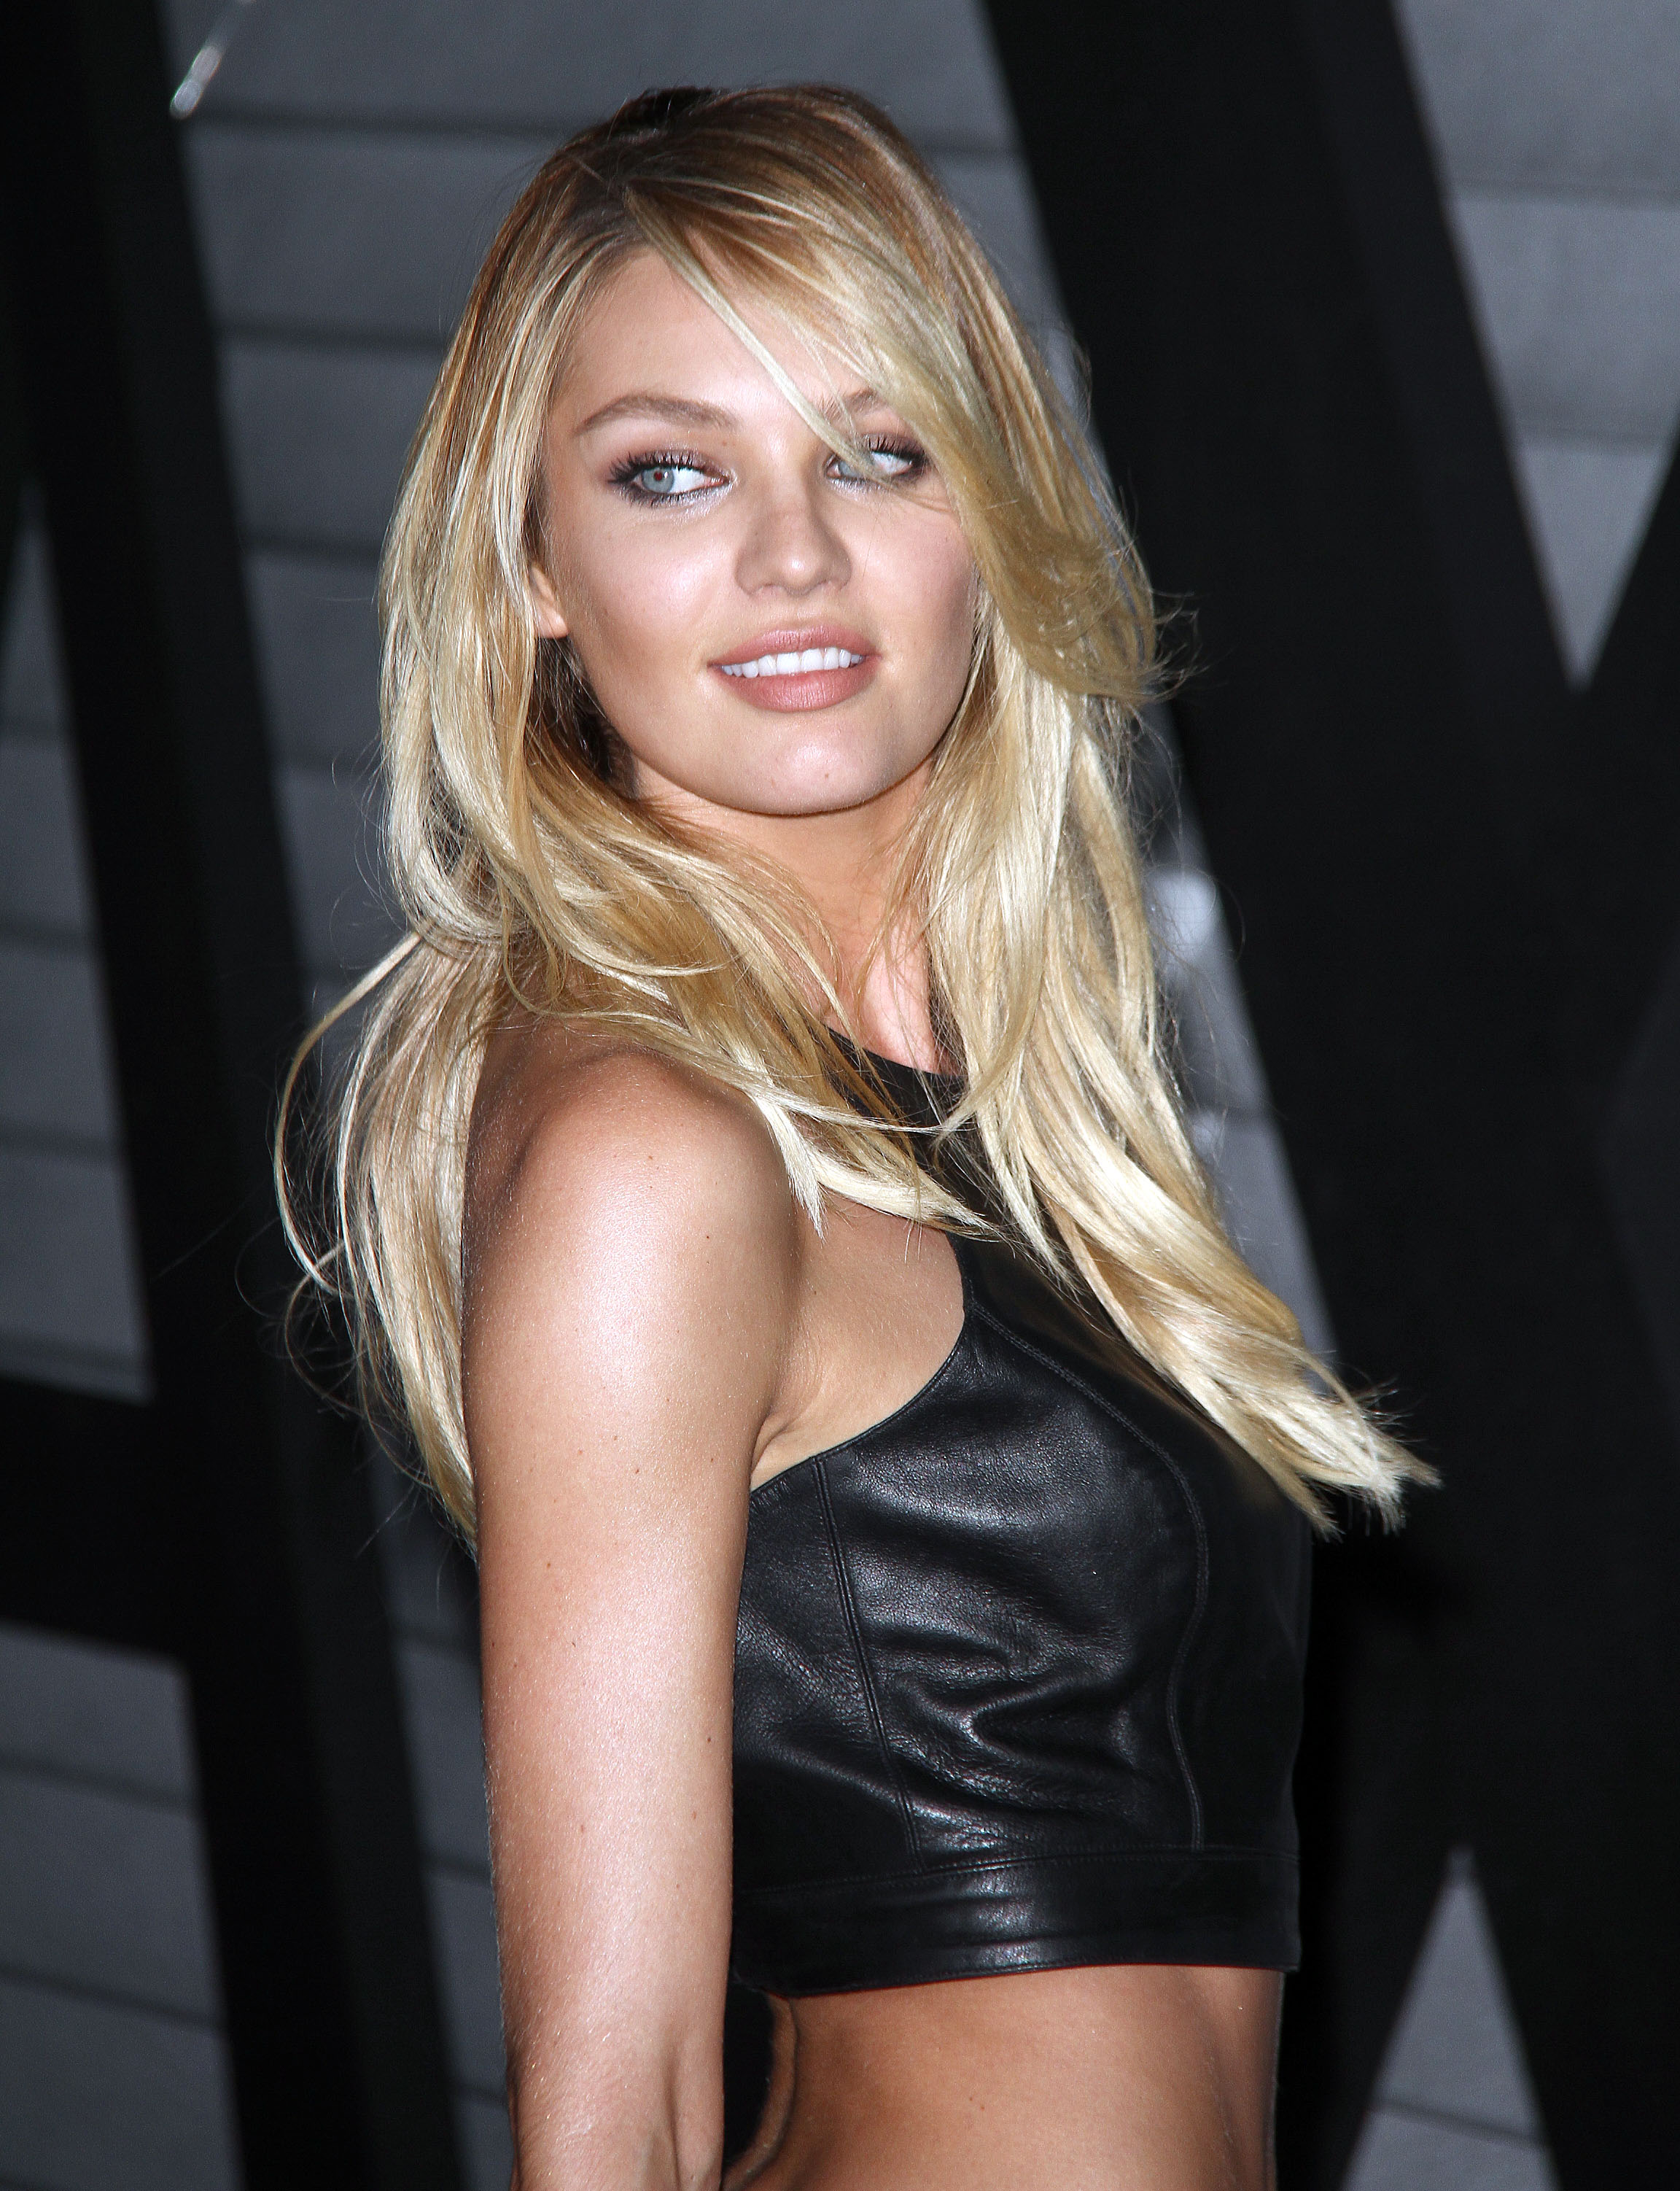 Candice Swanepoel at The Maxim Hot 100 Women Of 2014 Celebration in LA   183276 ...